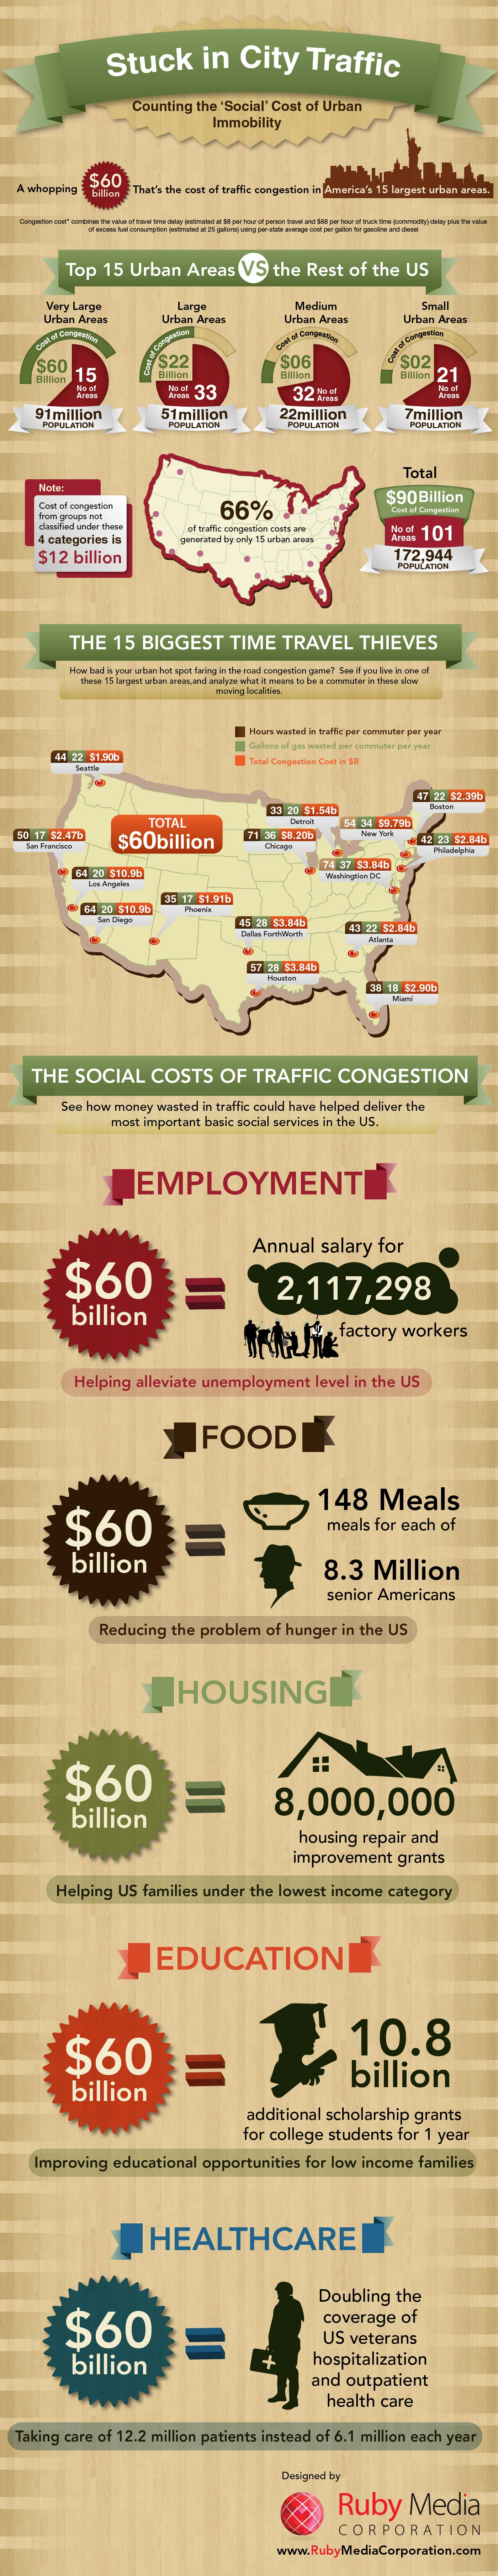 Counting the Social Cost of Immobility INFOGRAPHIC